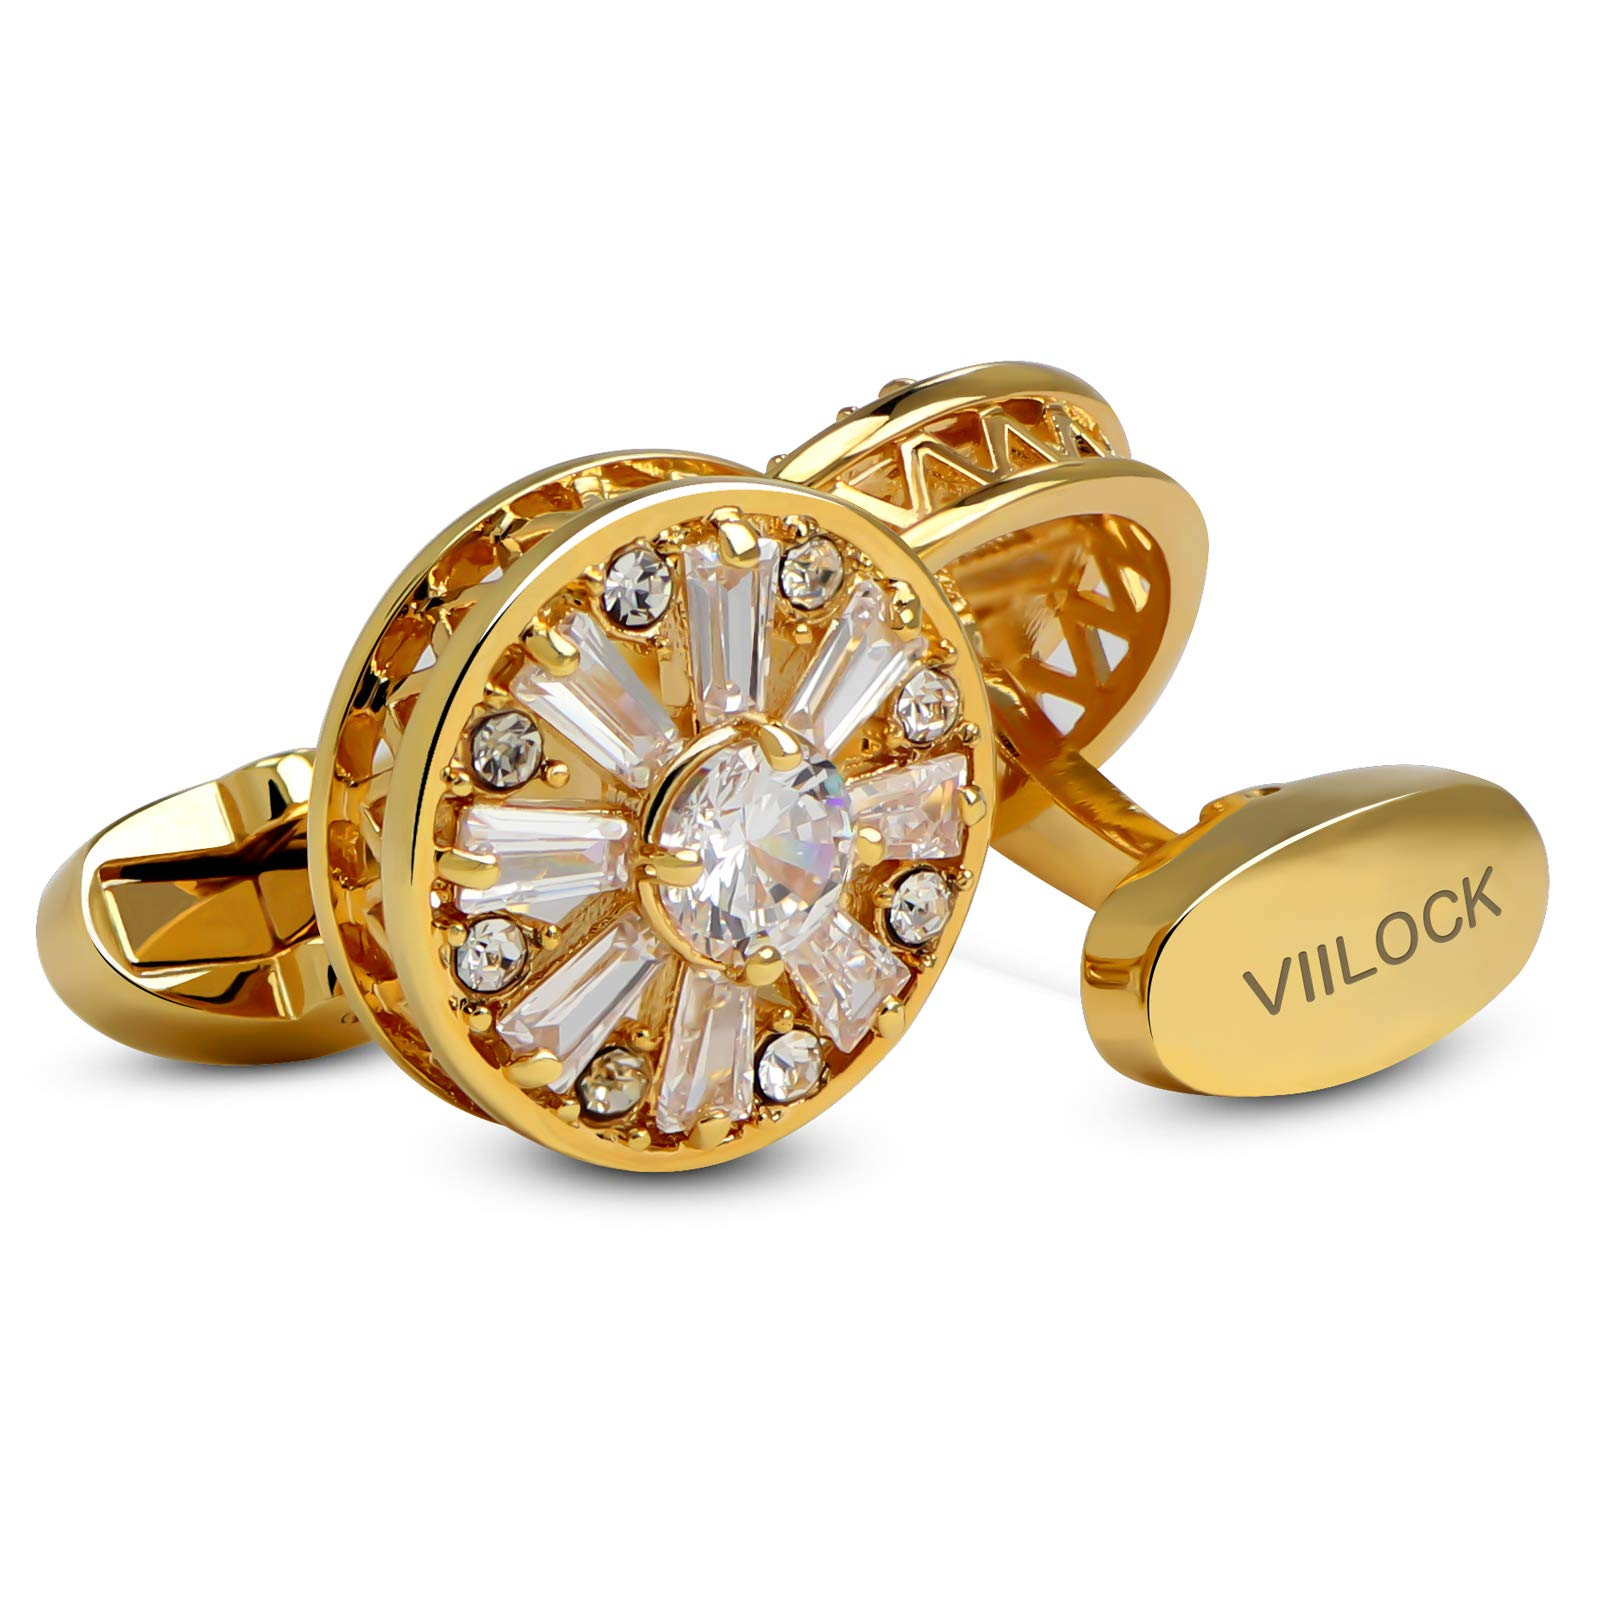 VIILOCK 18K Gold Painting with Super Shiny Crystal Cufflinks with Gift Bag Wedding Cuff-Links